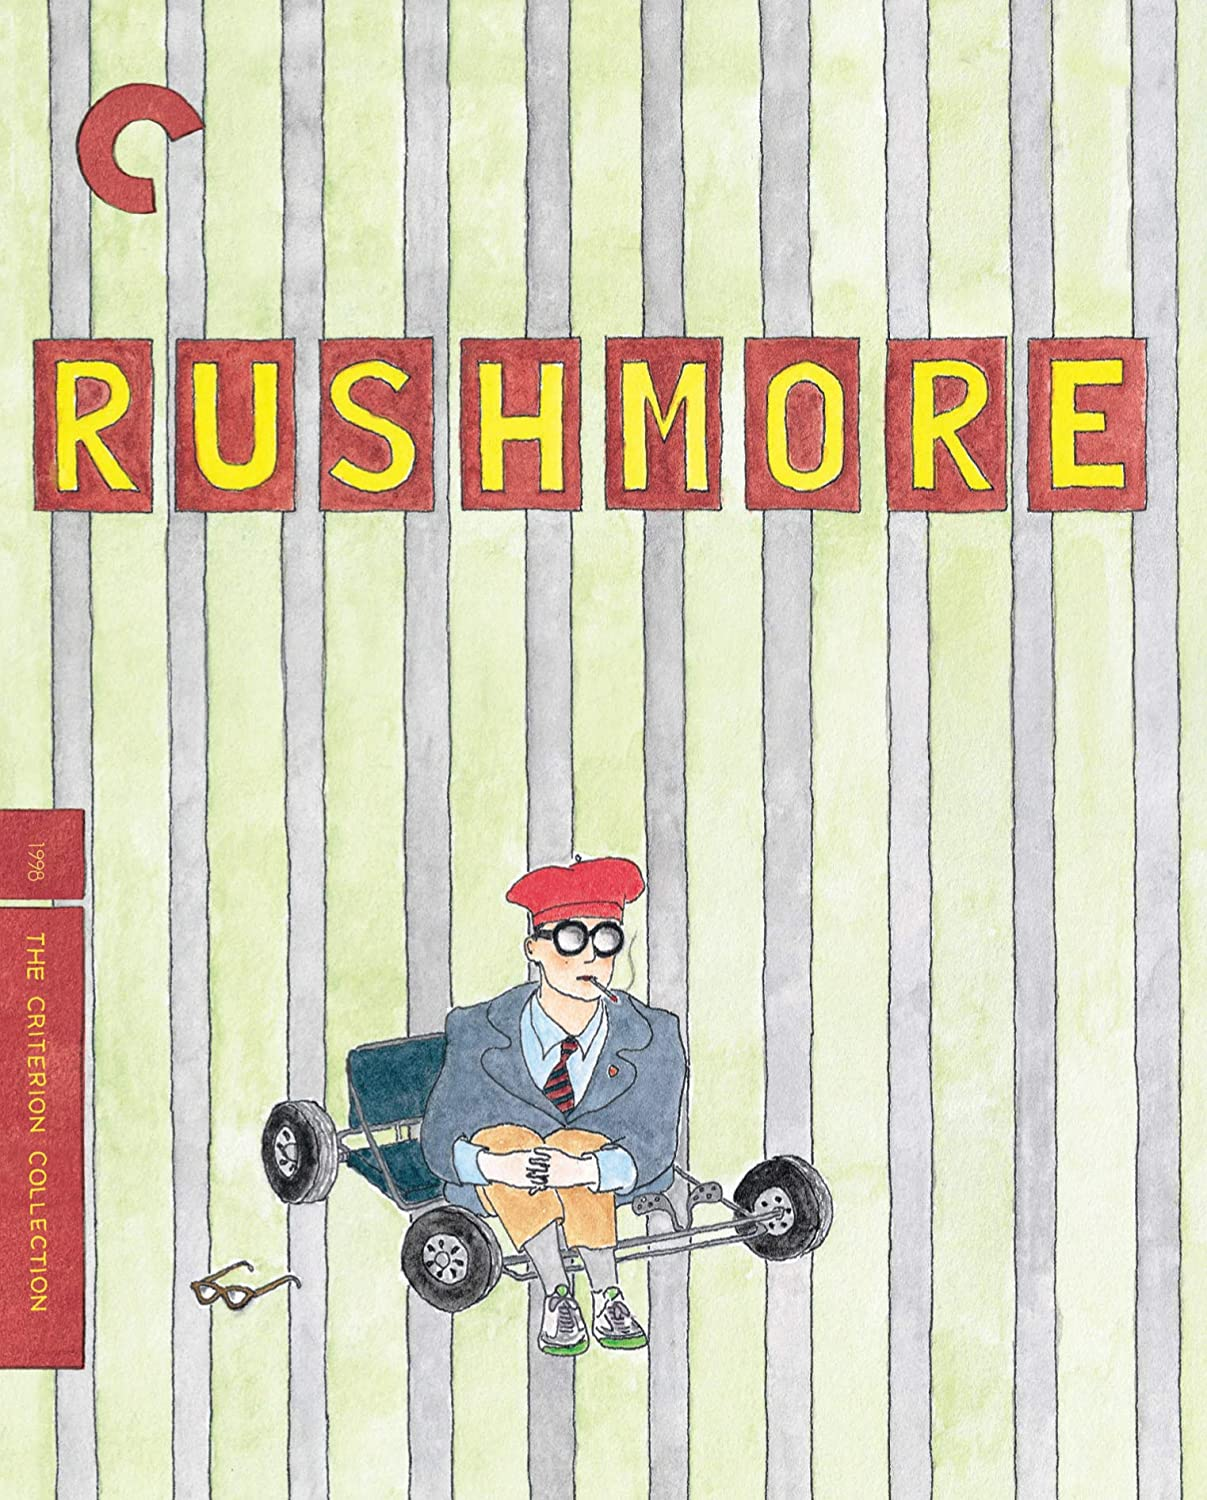 Rushmore - Cover